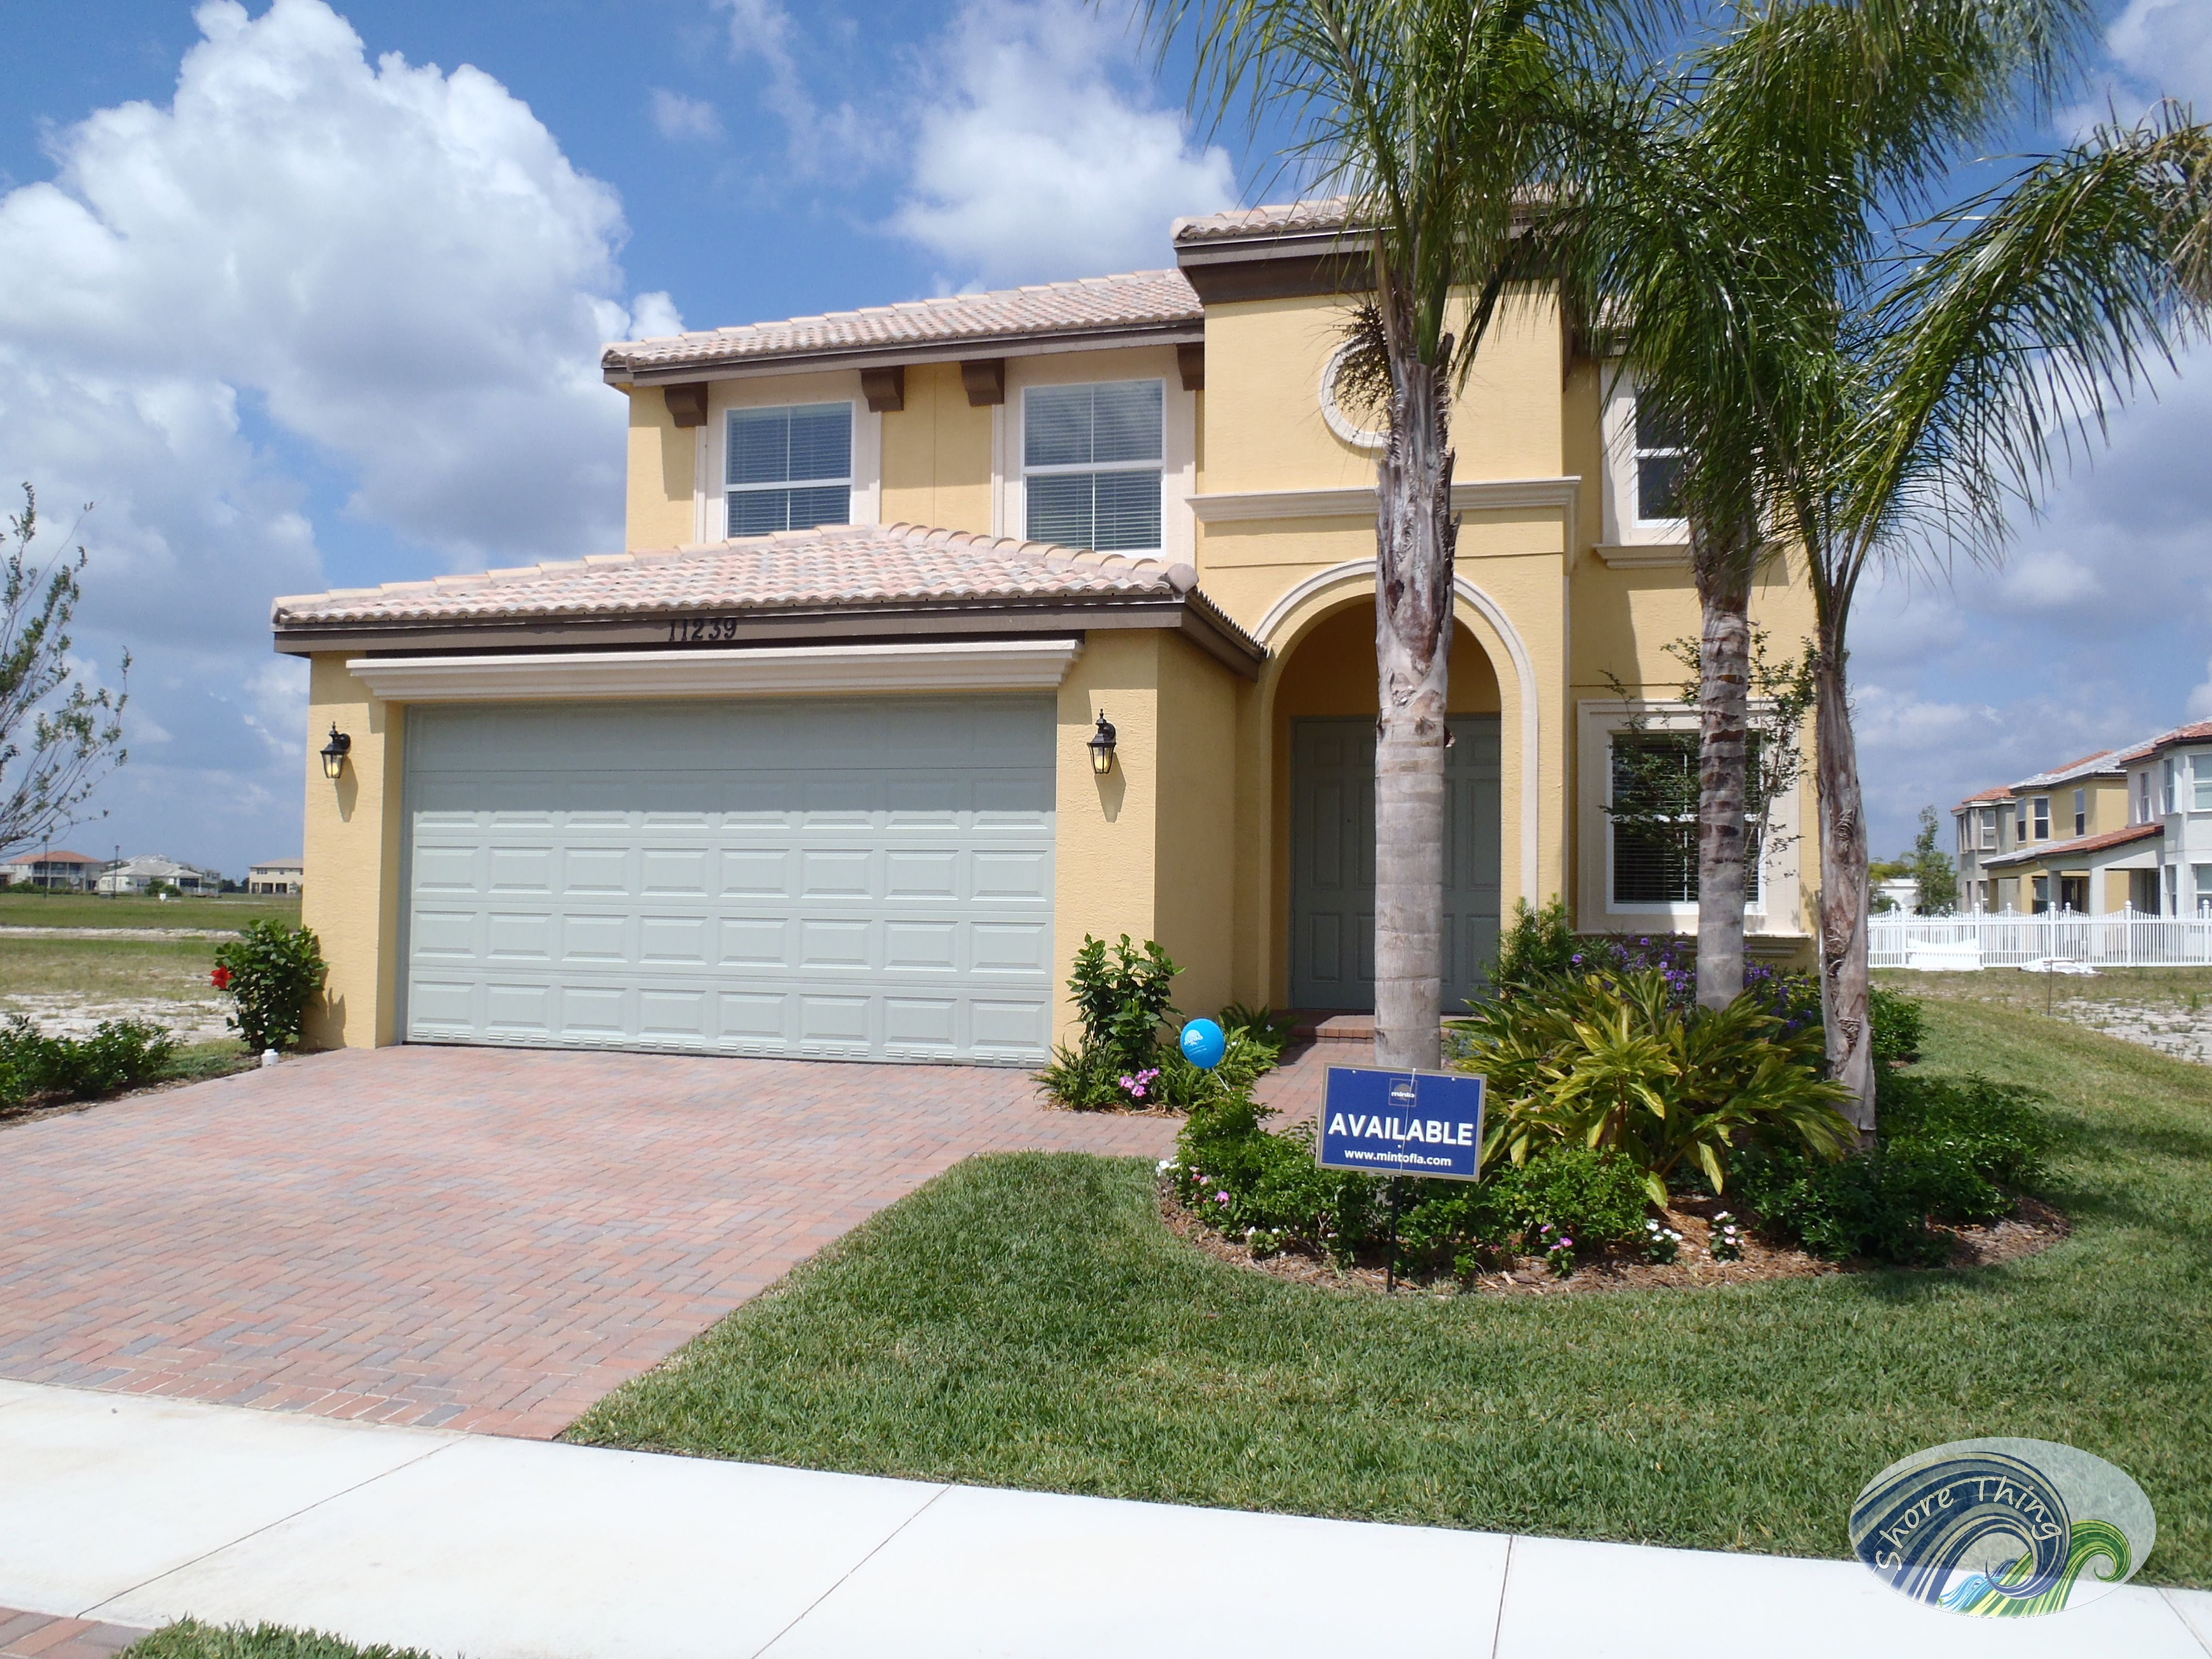 port st lucie home affordability ranked 9th in florida